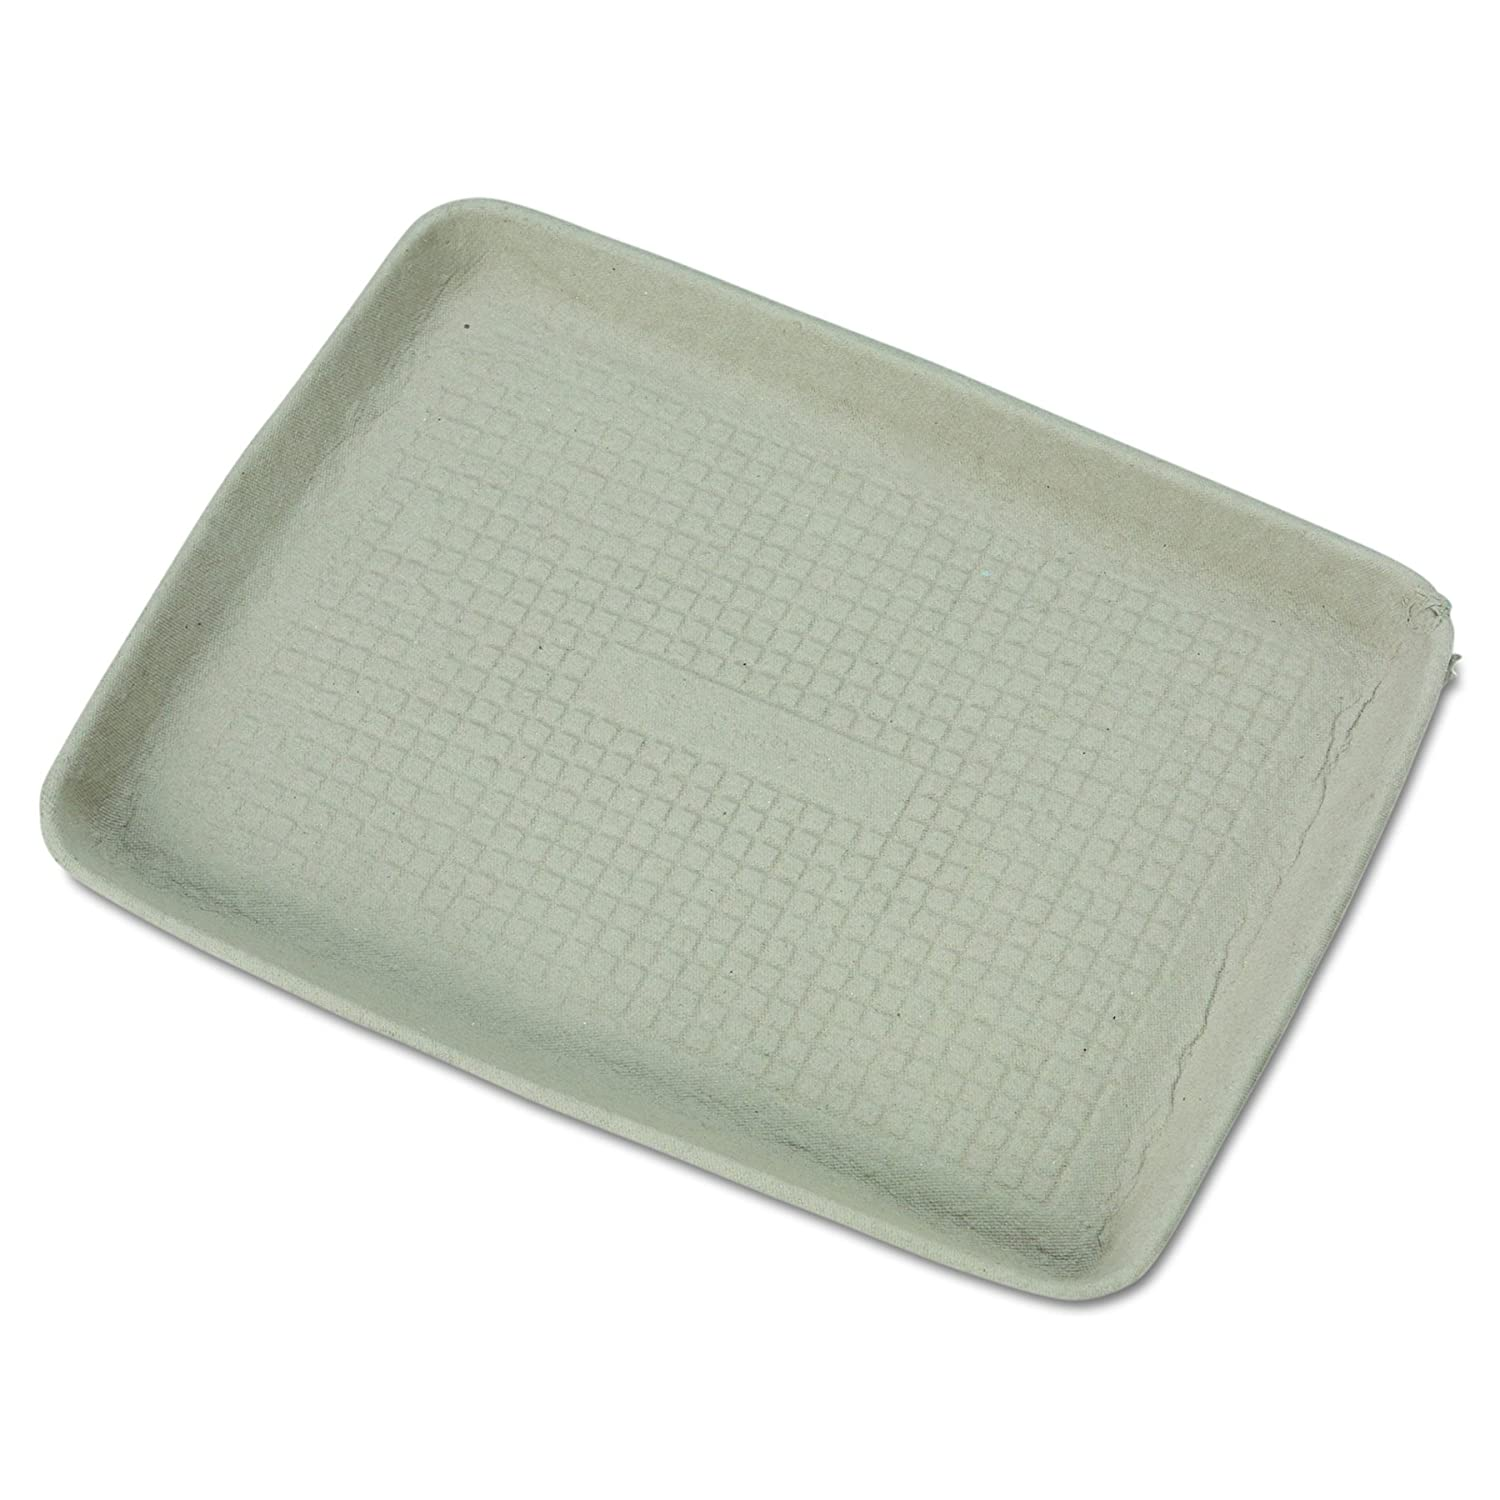 Chinet 20815 StrongHolder Molded Fiber Food Trays, 9 x 12 x 1, Beige, Rectangular (Case of 250) Huhtamaki HUH TUG